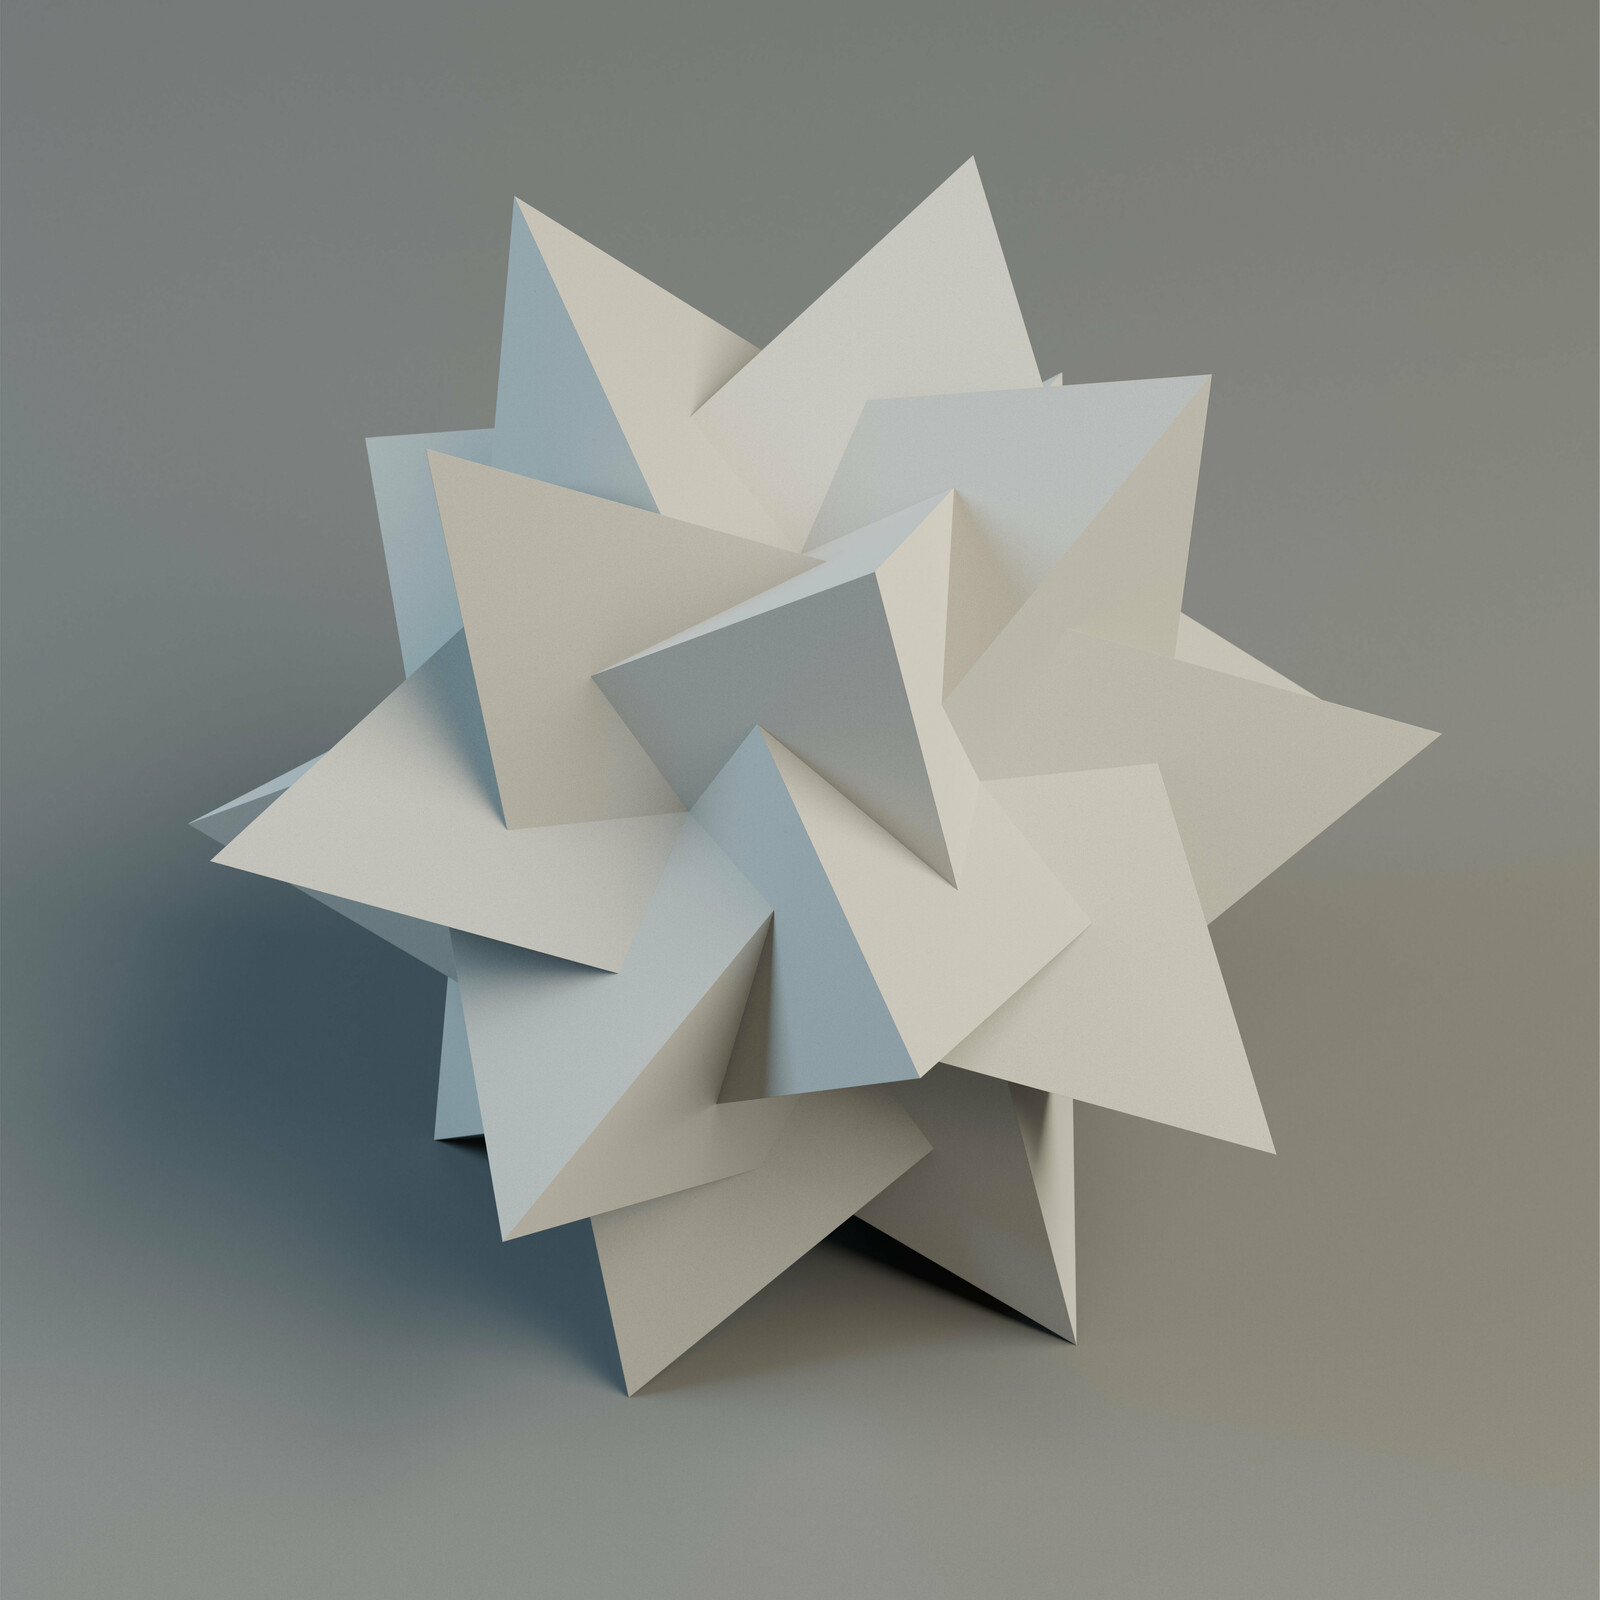 59 Stellations of the icosahedron